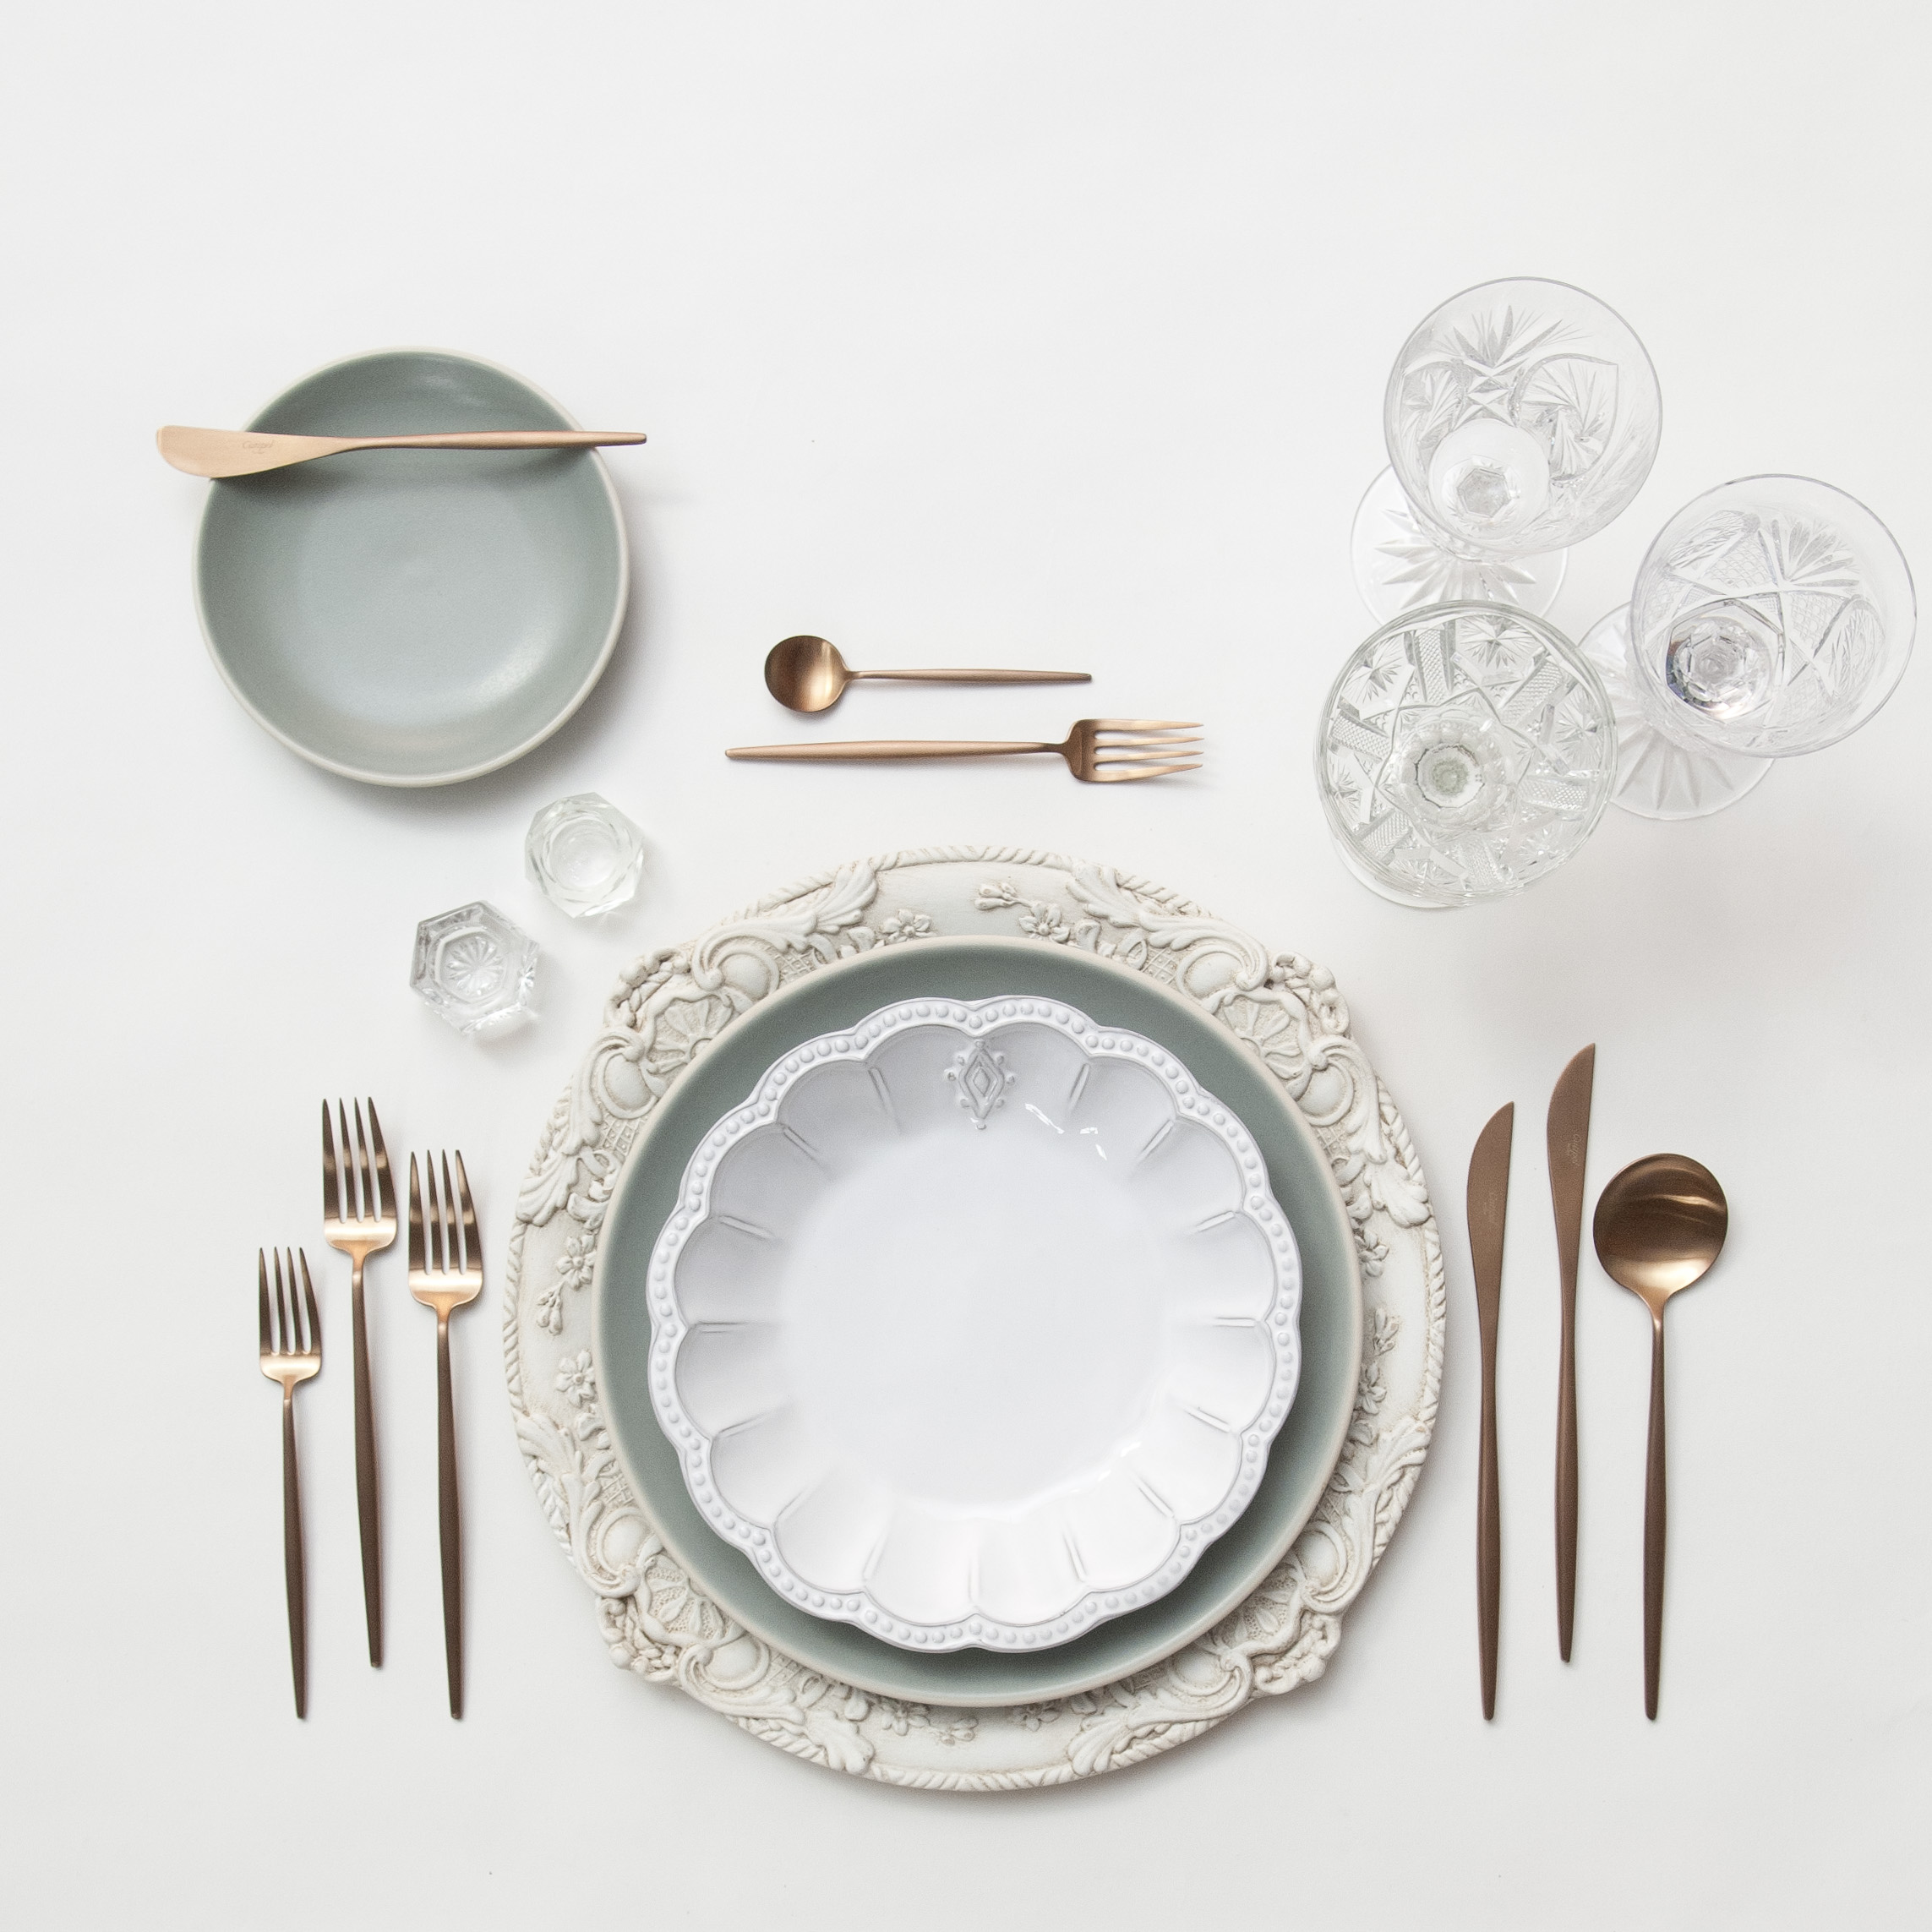 RENT: Verona Chargers in Antique White + Heath Ceramics in Mist + Signature Collection Dinnerware + Moon Flatware in Brushed Rose Gold + Vintage Cut Crystal Goblets + Vintage Champagne Coupes + Antique Crystal Salt Cellars  SHOP: Moon Flatware in Brushed Rose Gold